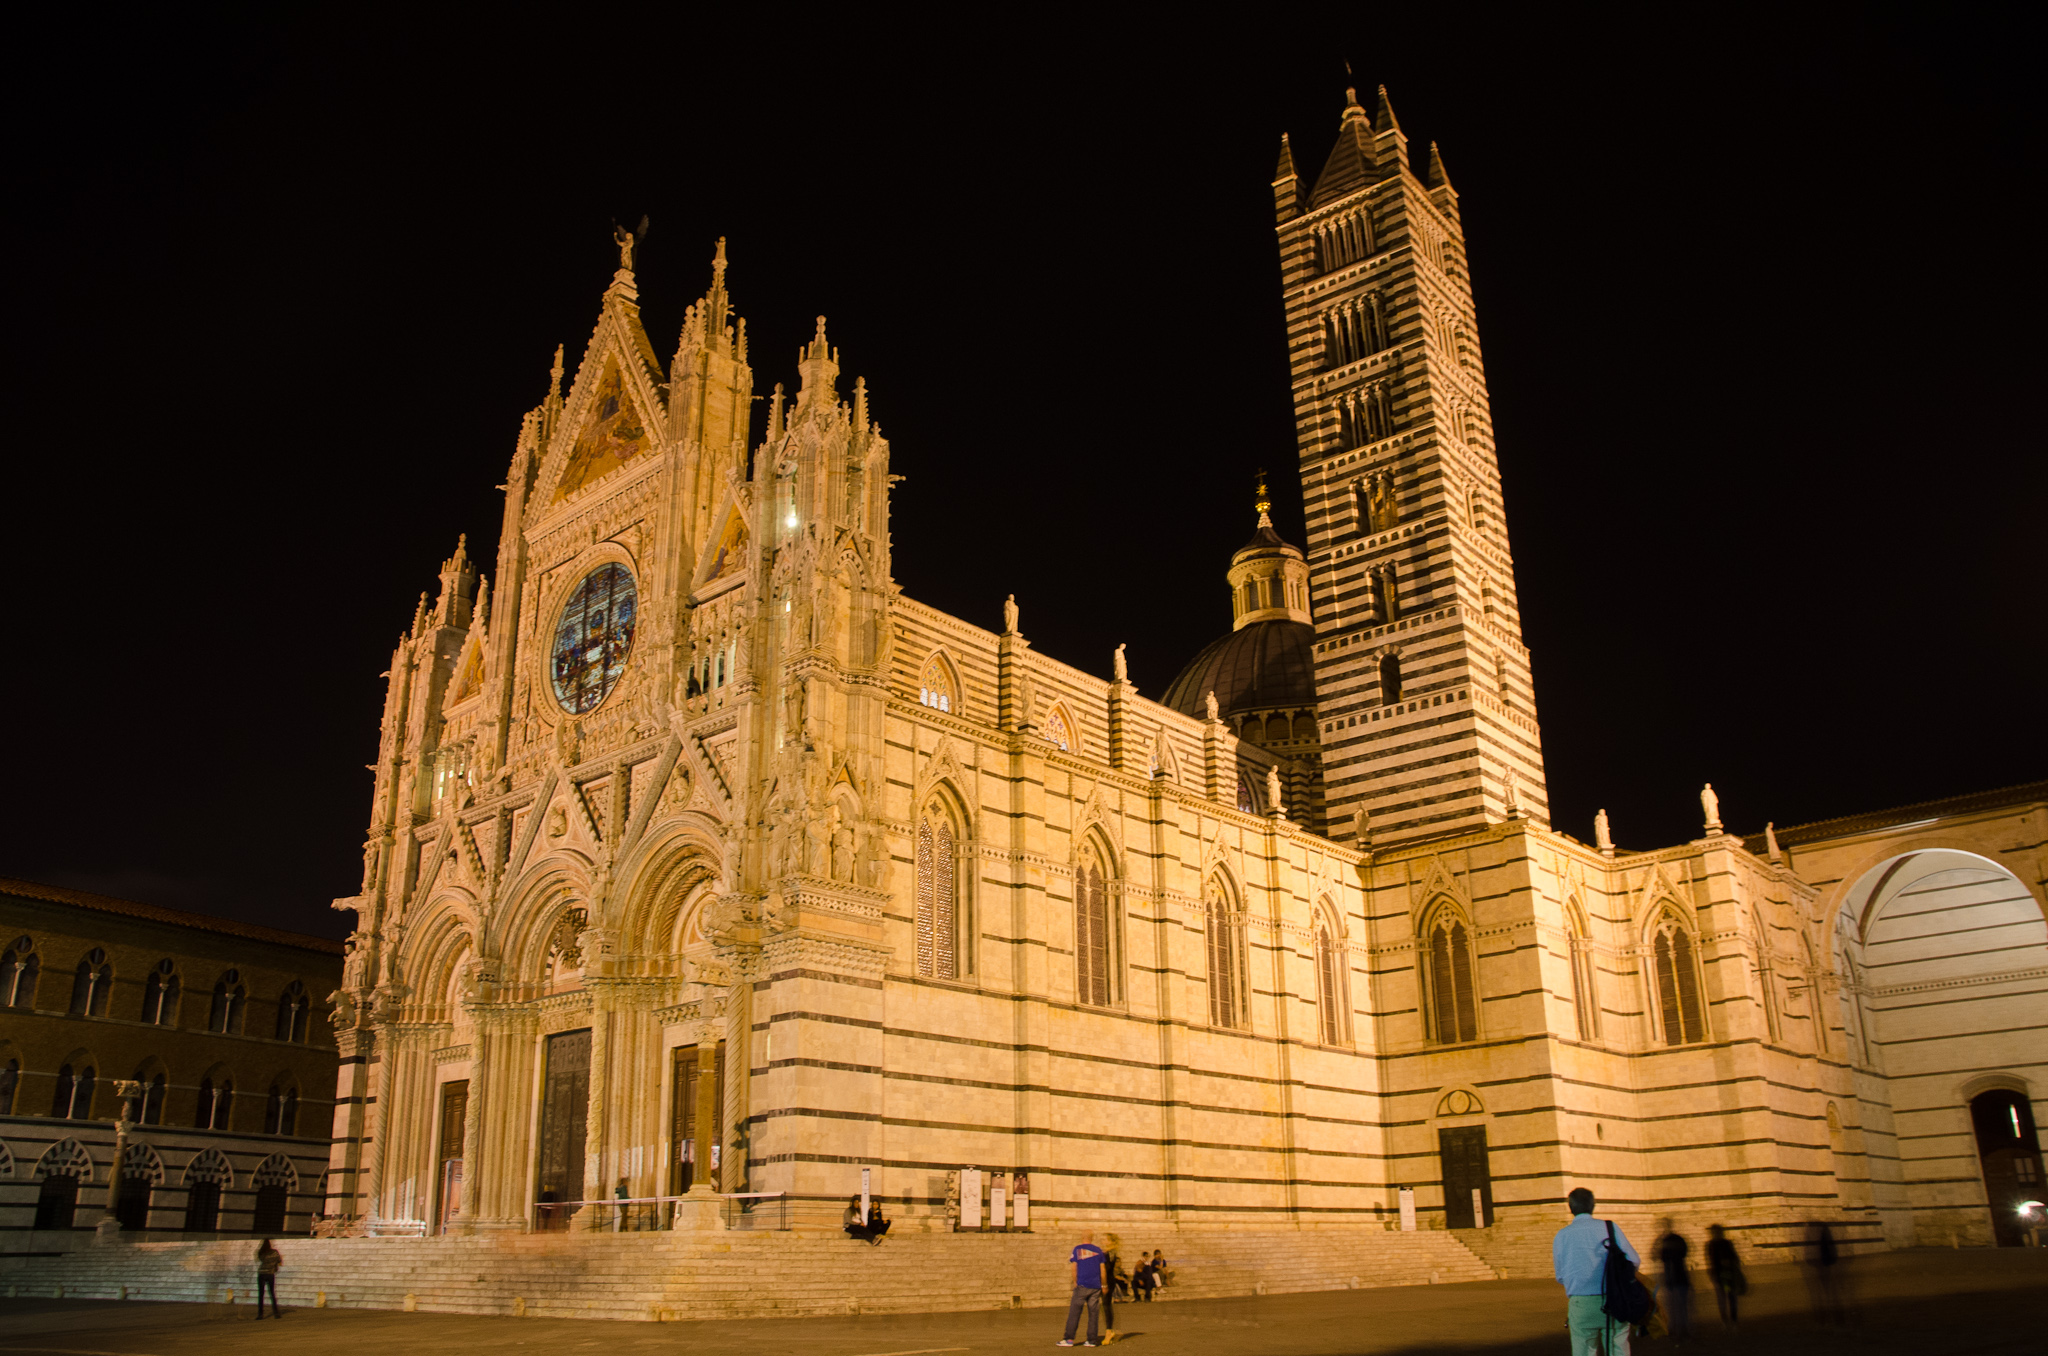 Siena is always wonderful, but especially at night